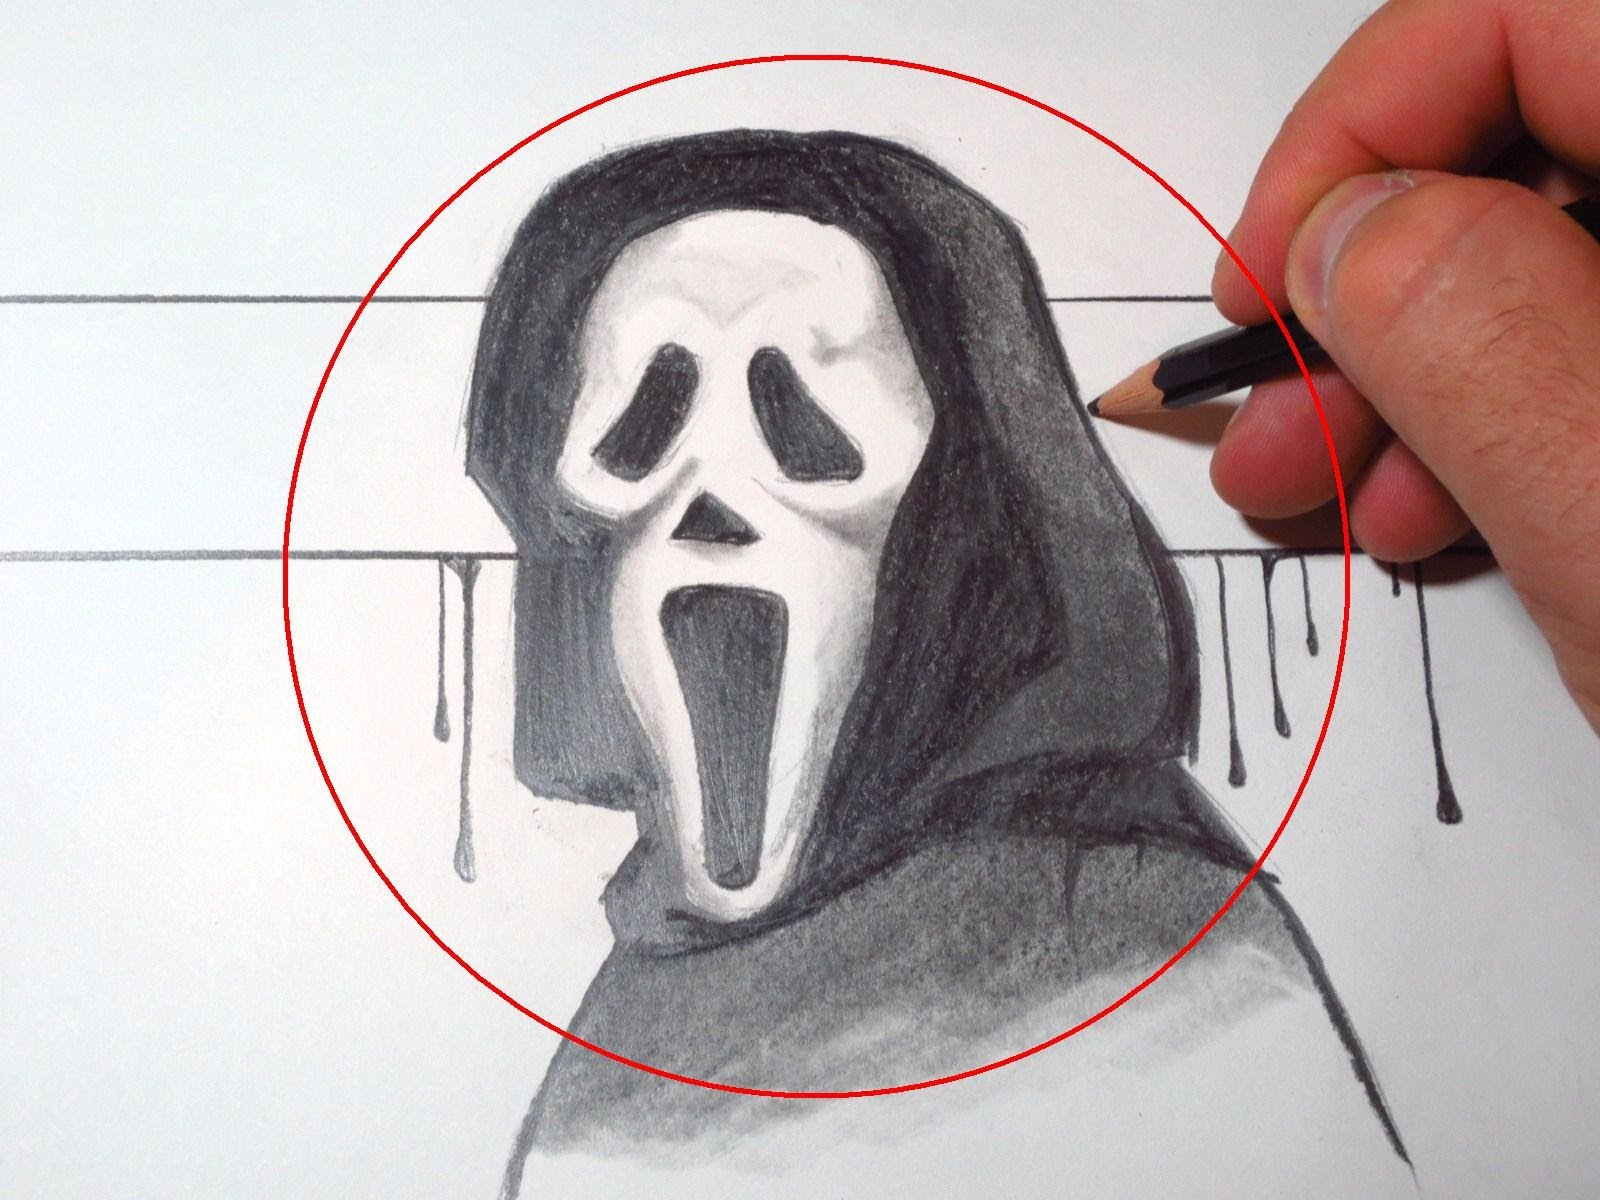 Drawn masks face drawing Mask Scream To YouTube Draw